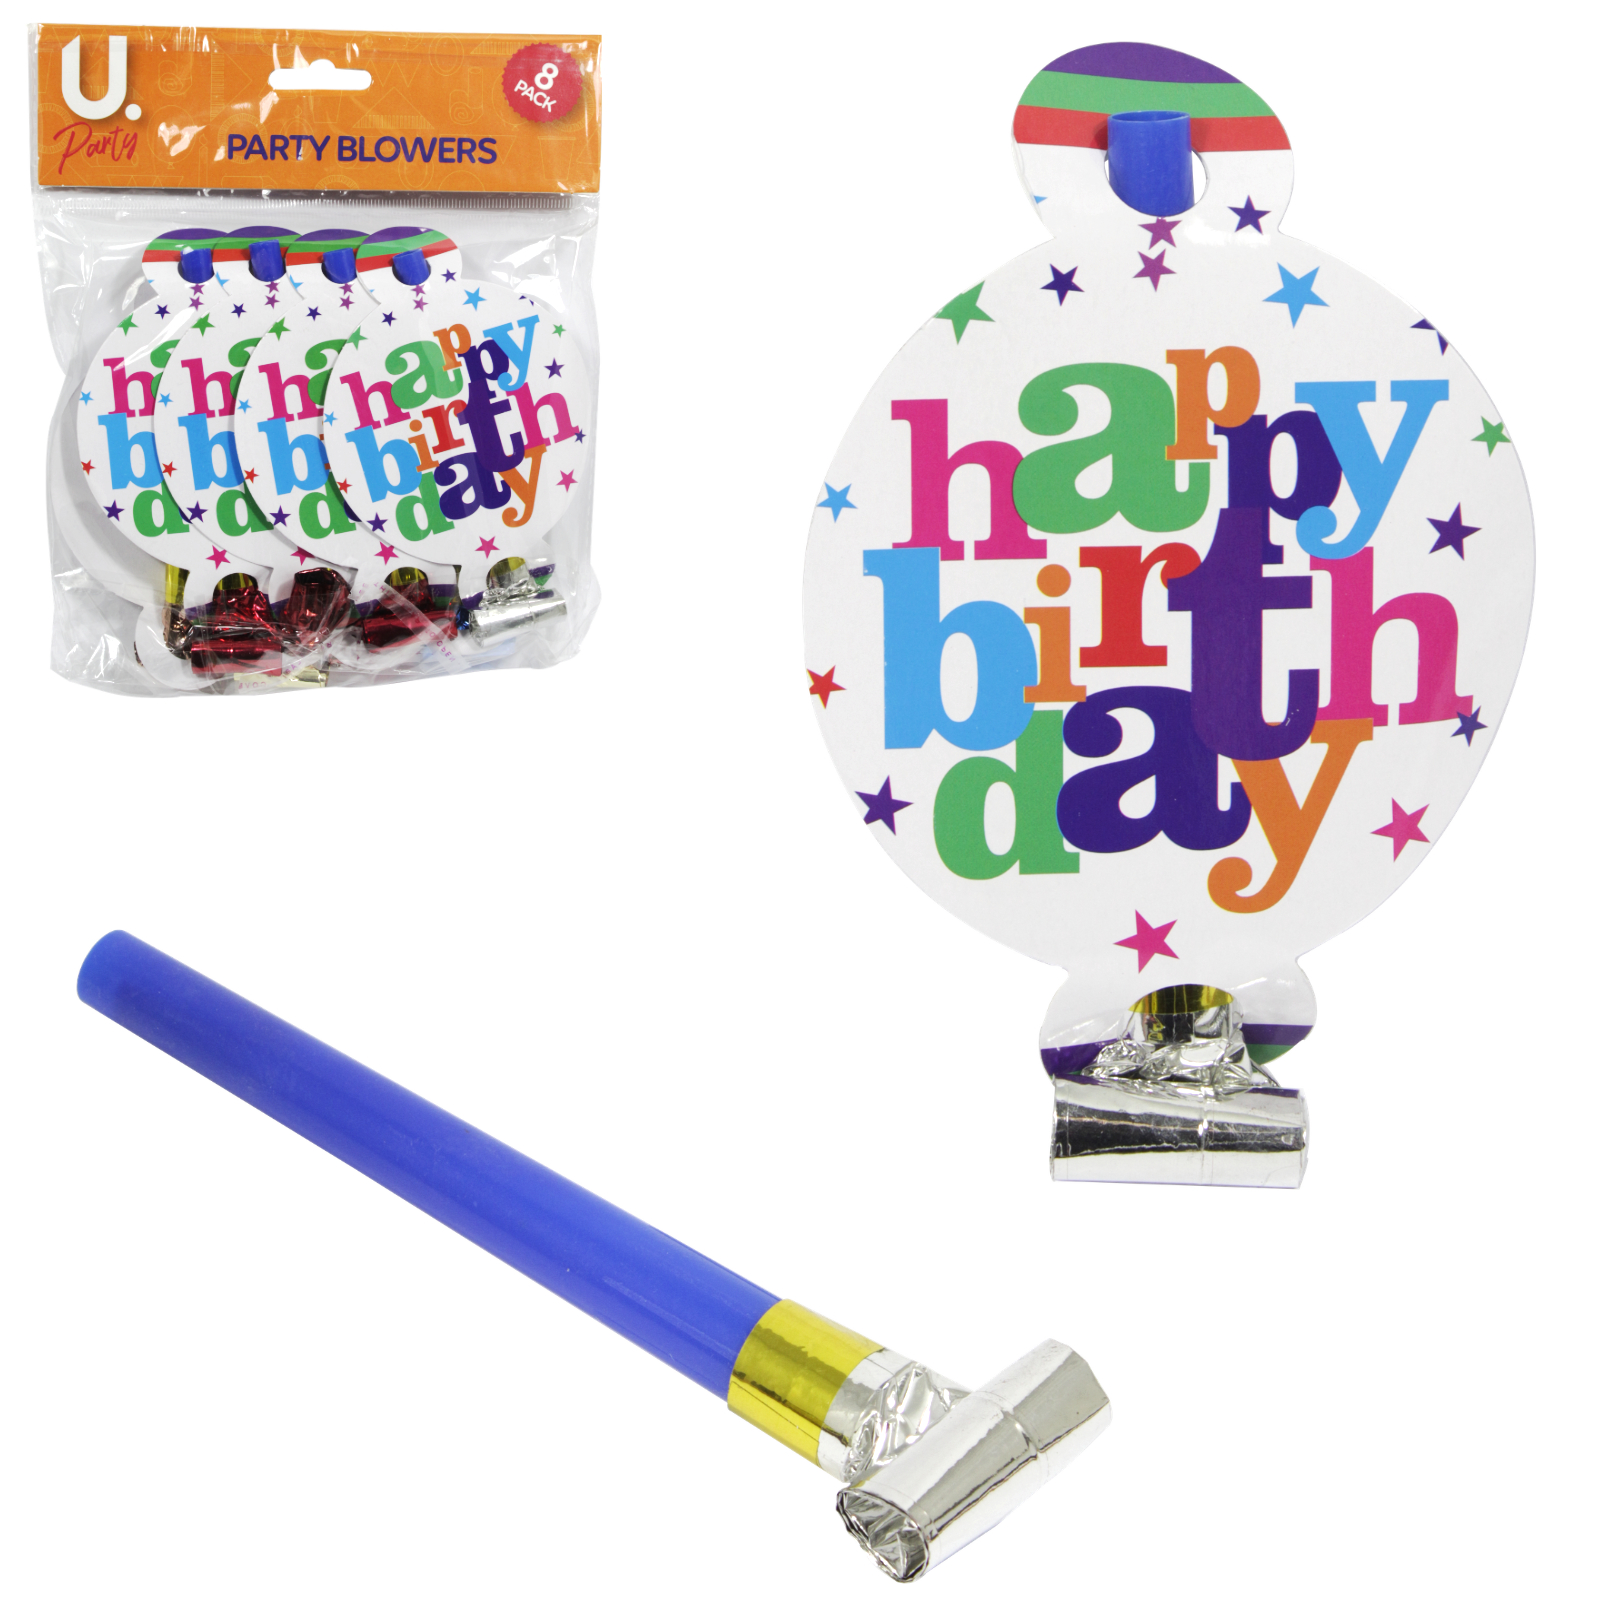 HAPPY BIRTHDAY PARTY BLOWERS 8PK